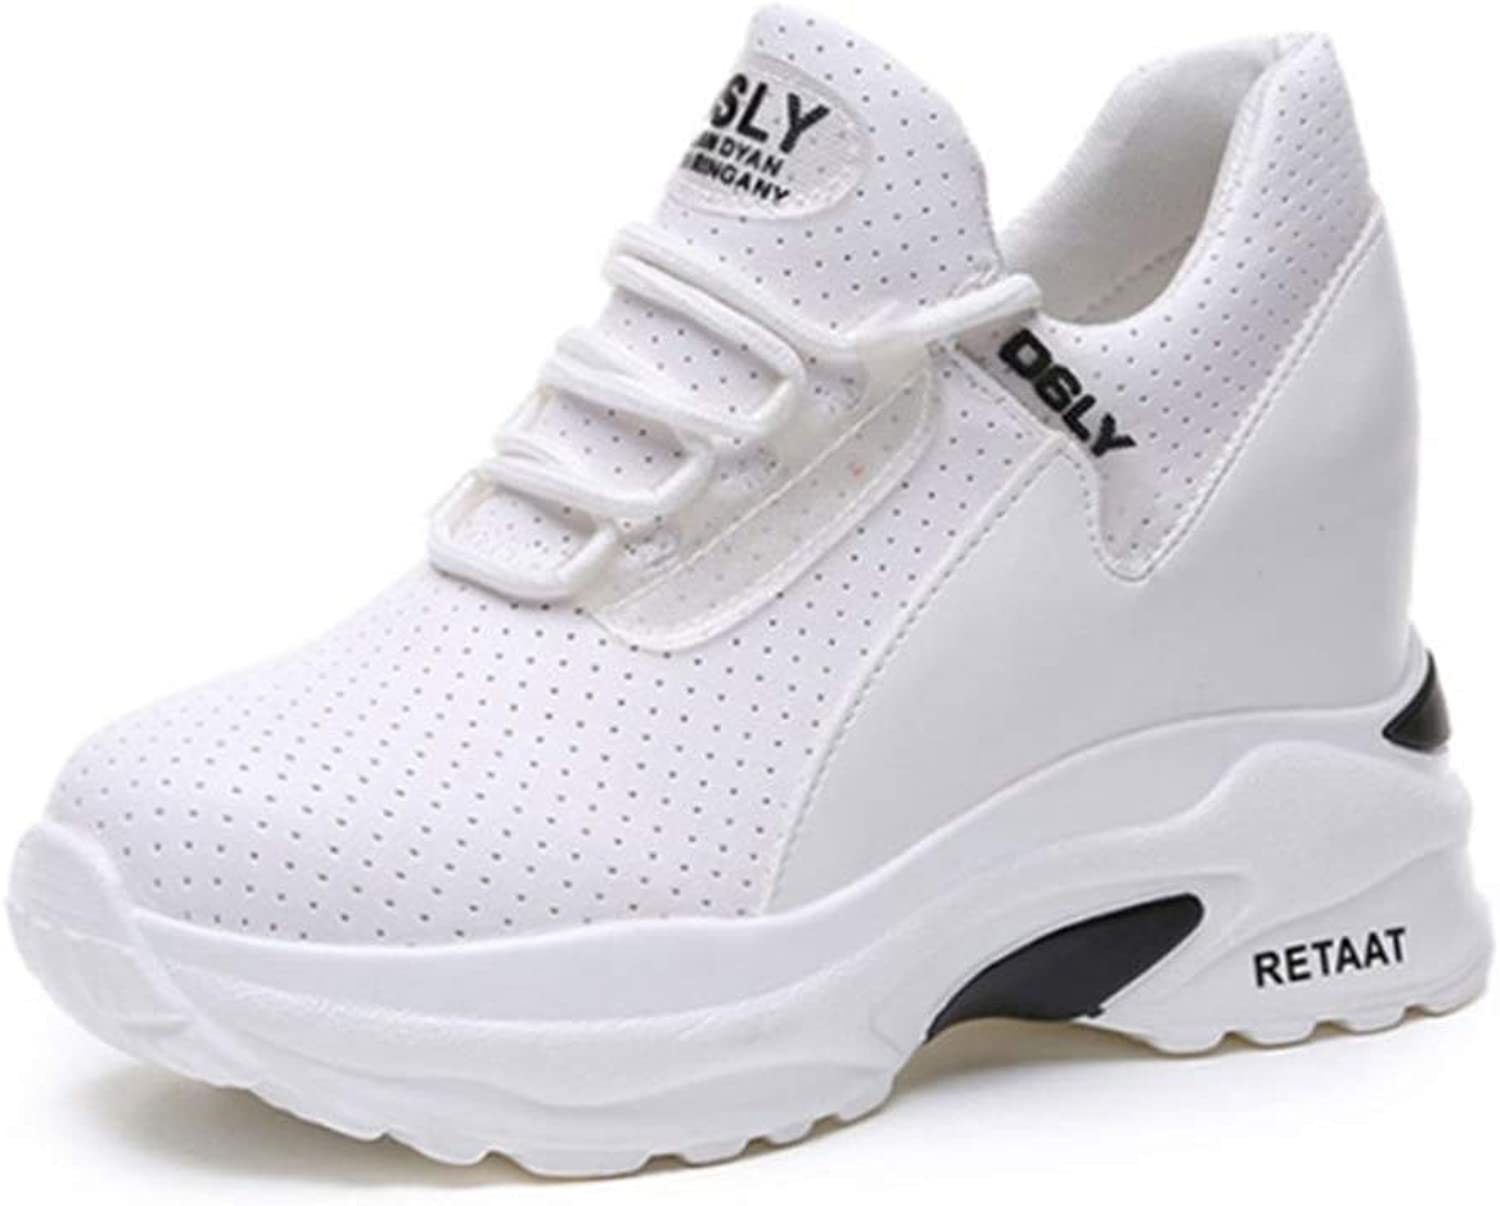 T-JULY Heel Lady Casual White shoes Women Sneakers Leisure Outdoor Platform shoes Breathable Height Increasing shoes